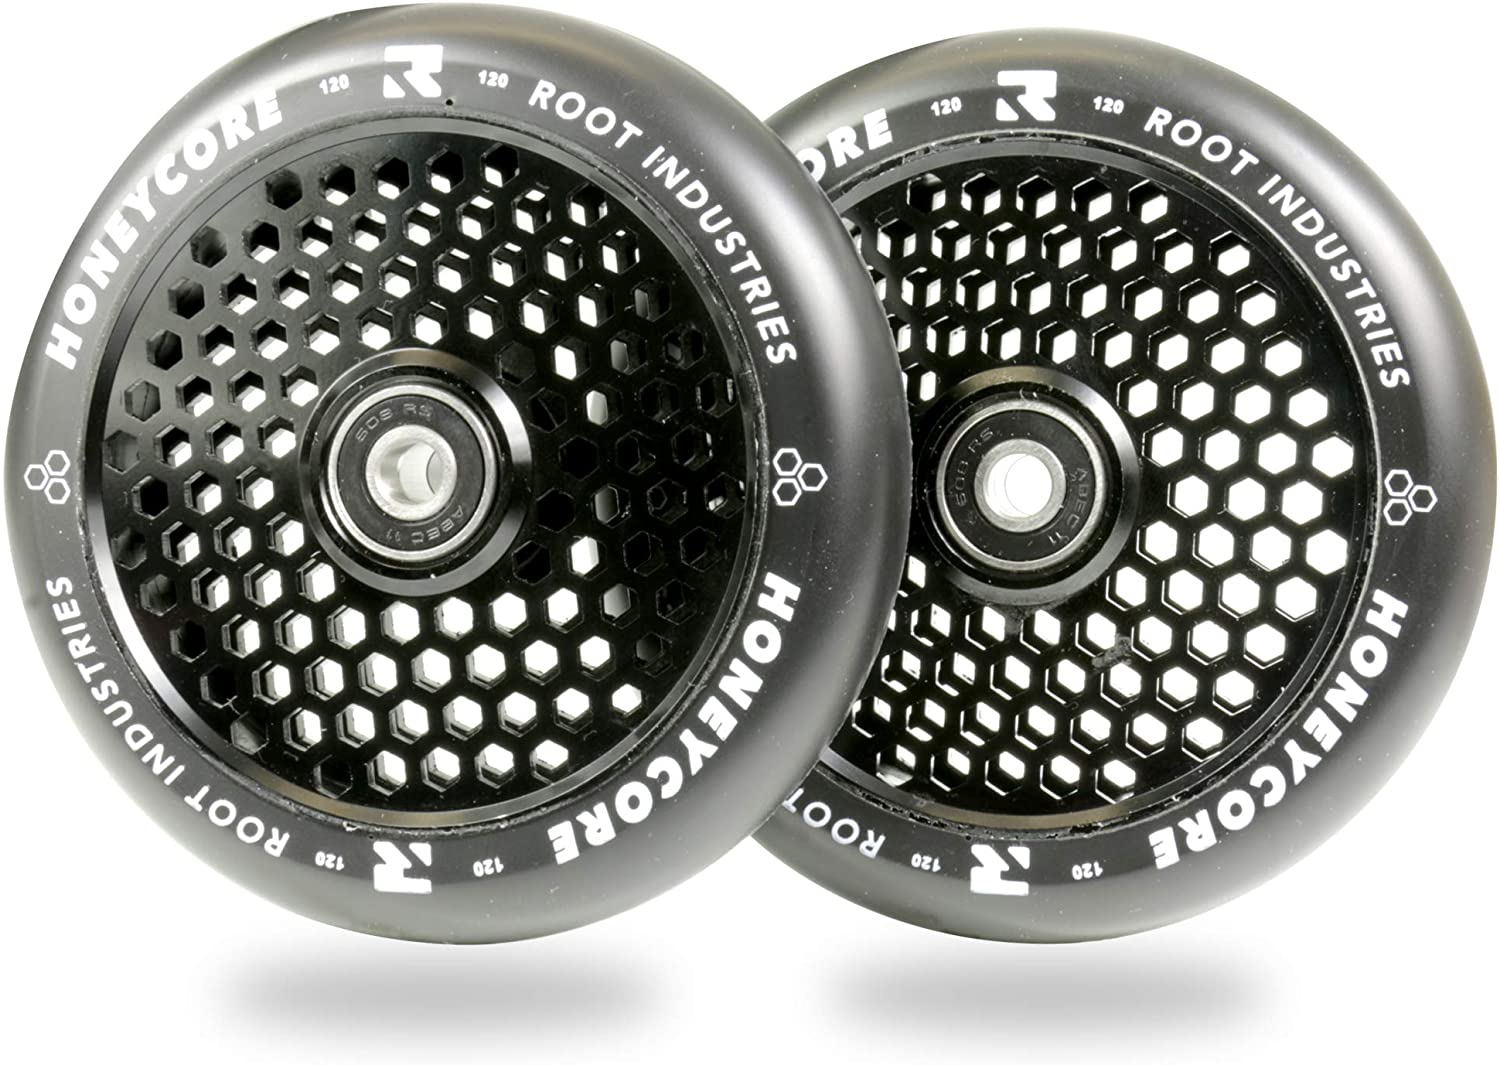 Honeycore Scooter Wheels by Root Industries